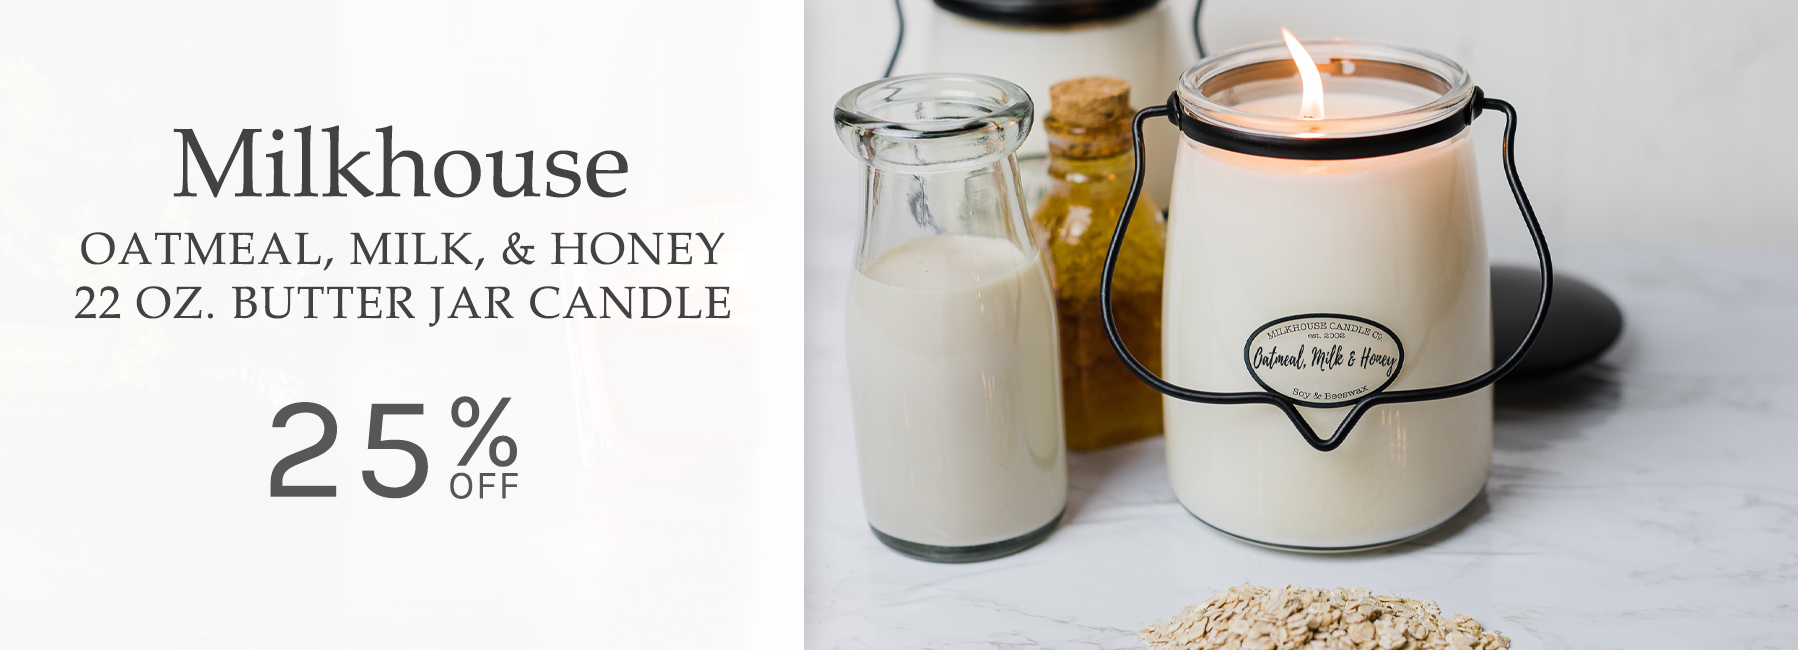 Milkhouse - Oatmeal Milk and Honey 22 Ounce Butter Jar Candle - 25 Percent OFF